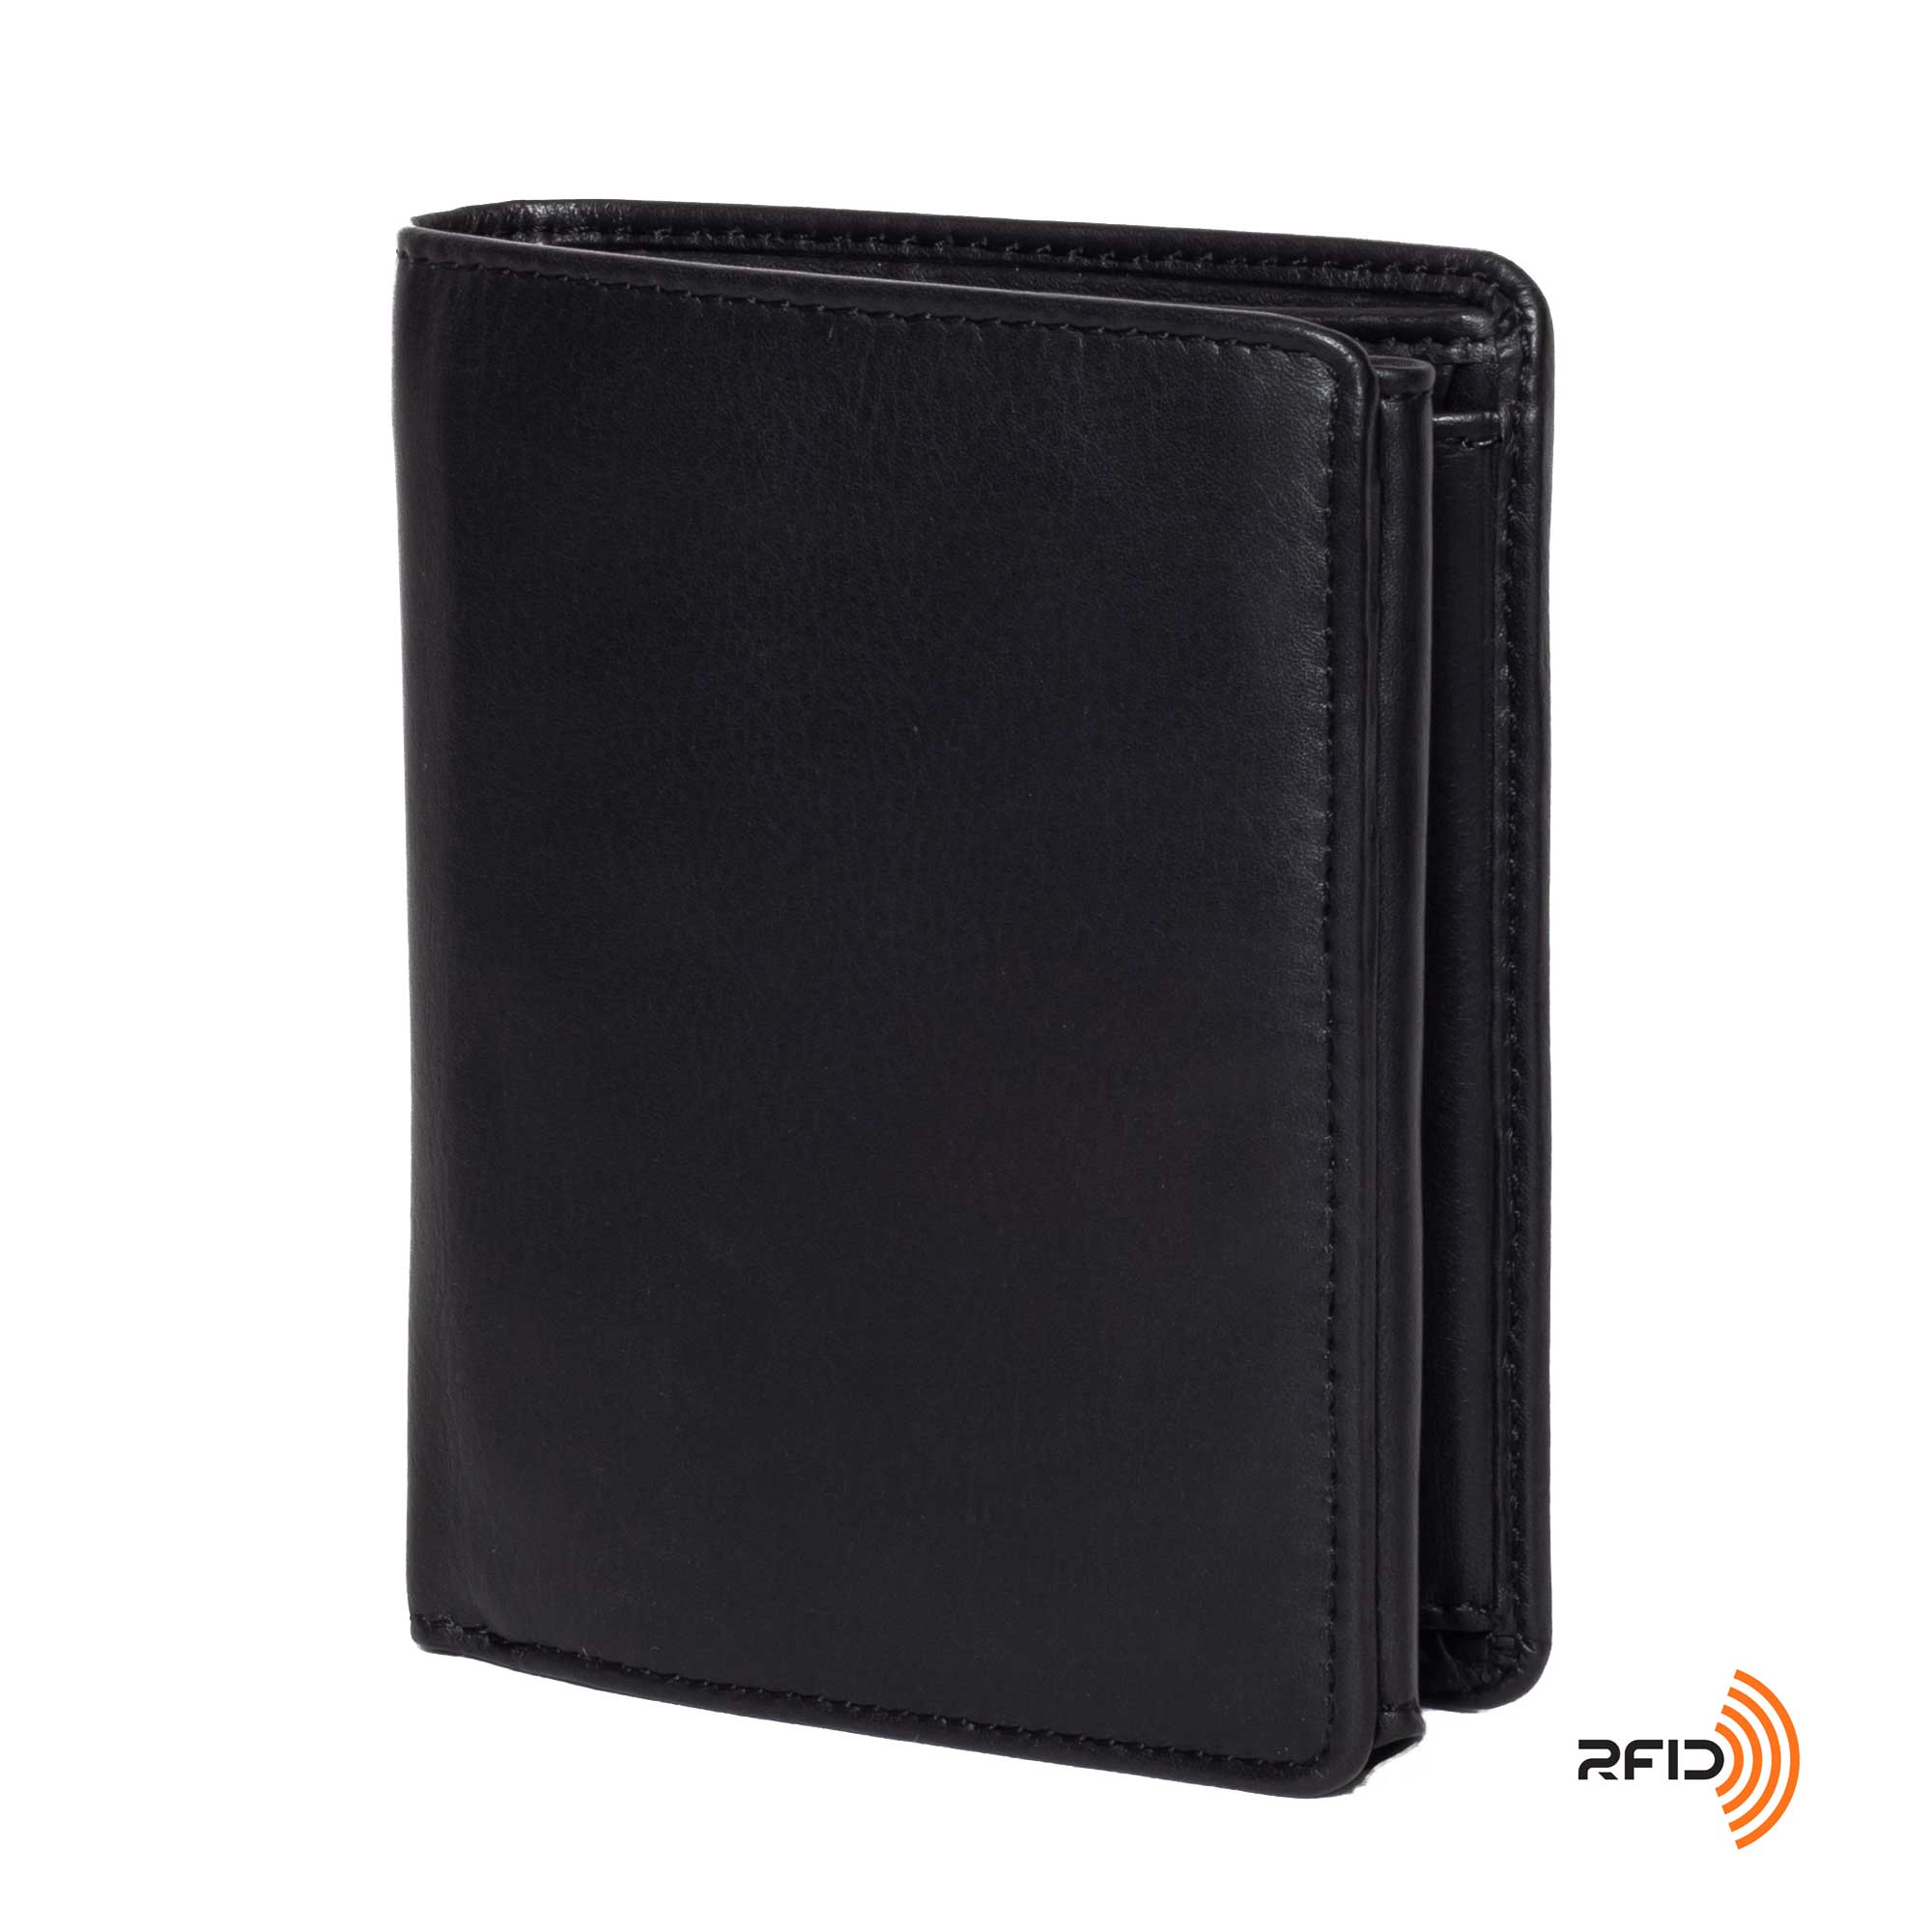 DiLoro Men's Vertical Leather Bifold Flip ID Zip Coin Wallet Black with RFID Protection  - Front, Side View